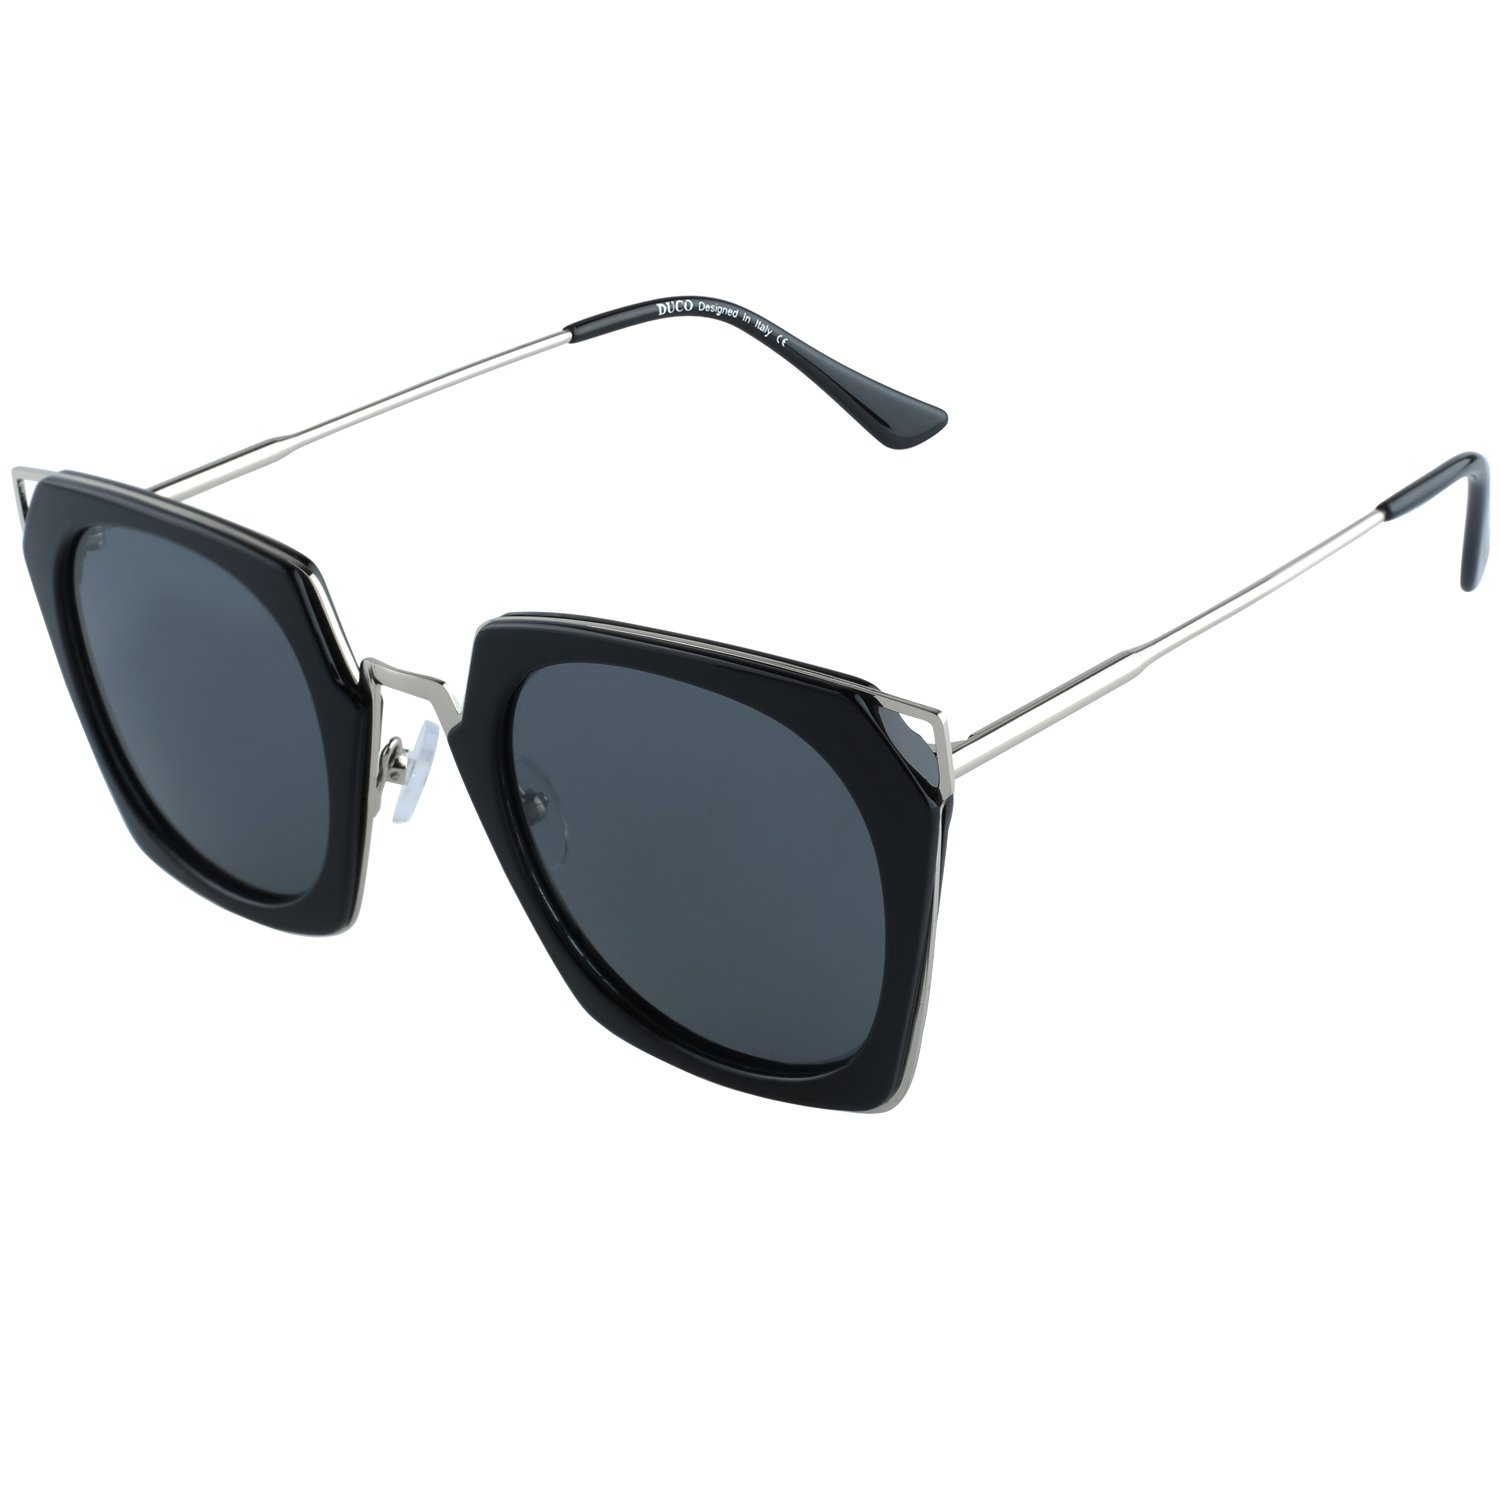 DUCO Classic Vintage Cateye Polarized Sunglasses For Women 100% UV Protection W001 by DUCO